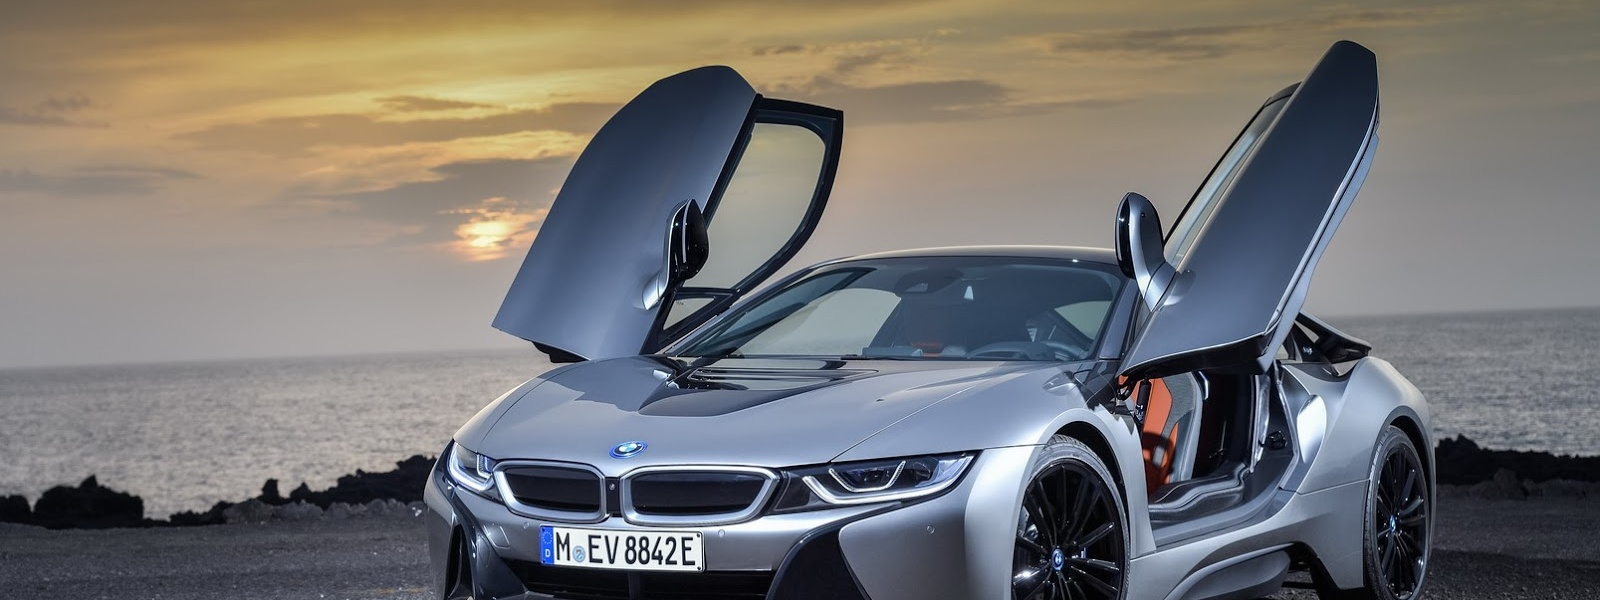 2019-BMW-i8-Roadster-Coupe-48.jpg